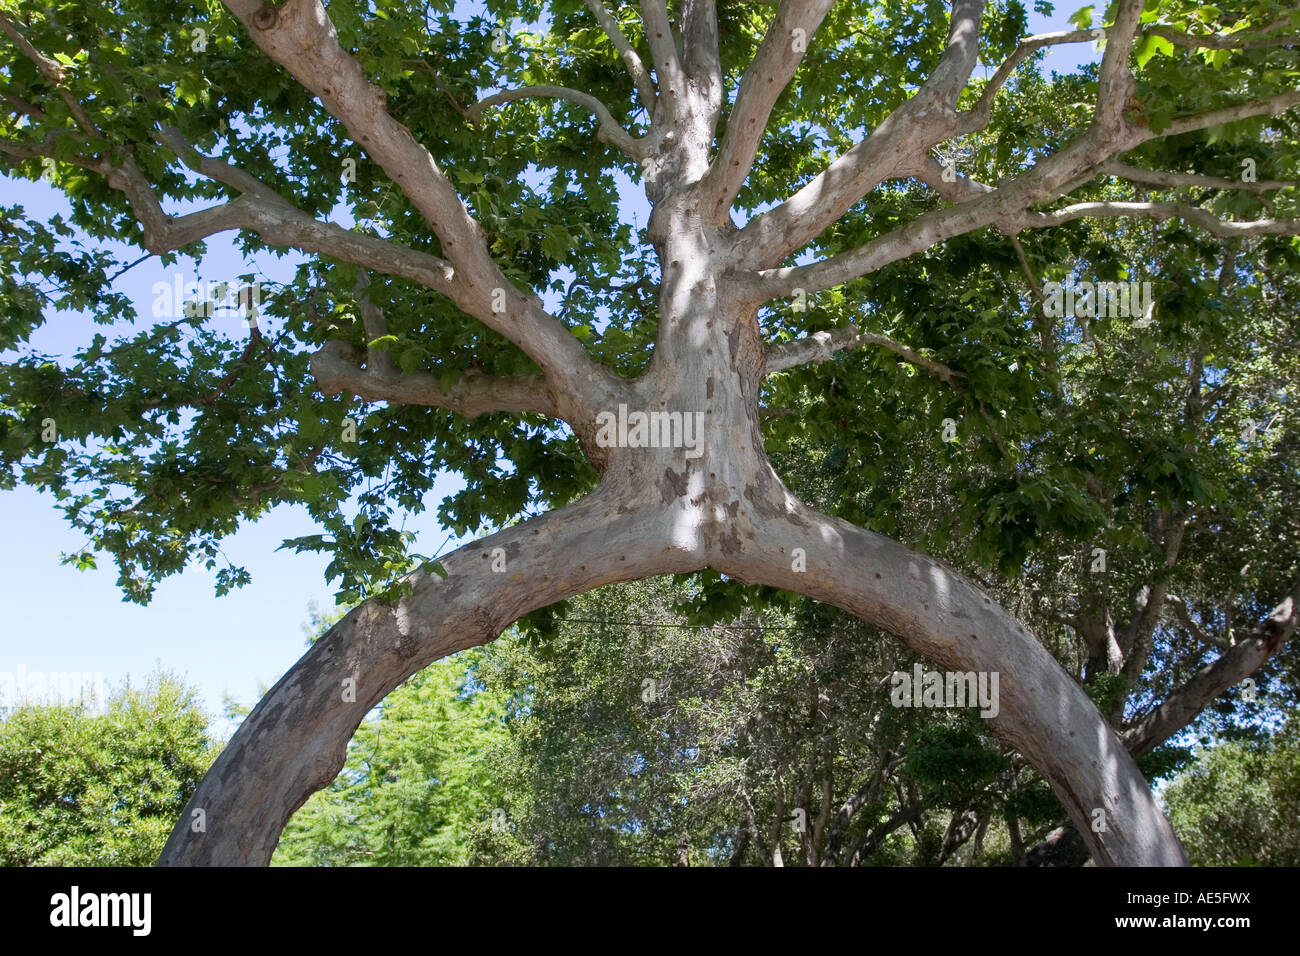 two sycamore trees turned into one tree with an archway trunk at stock photo 13574821 alamy. Black Bedroom Furniture Sets. Home Design Ideas